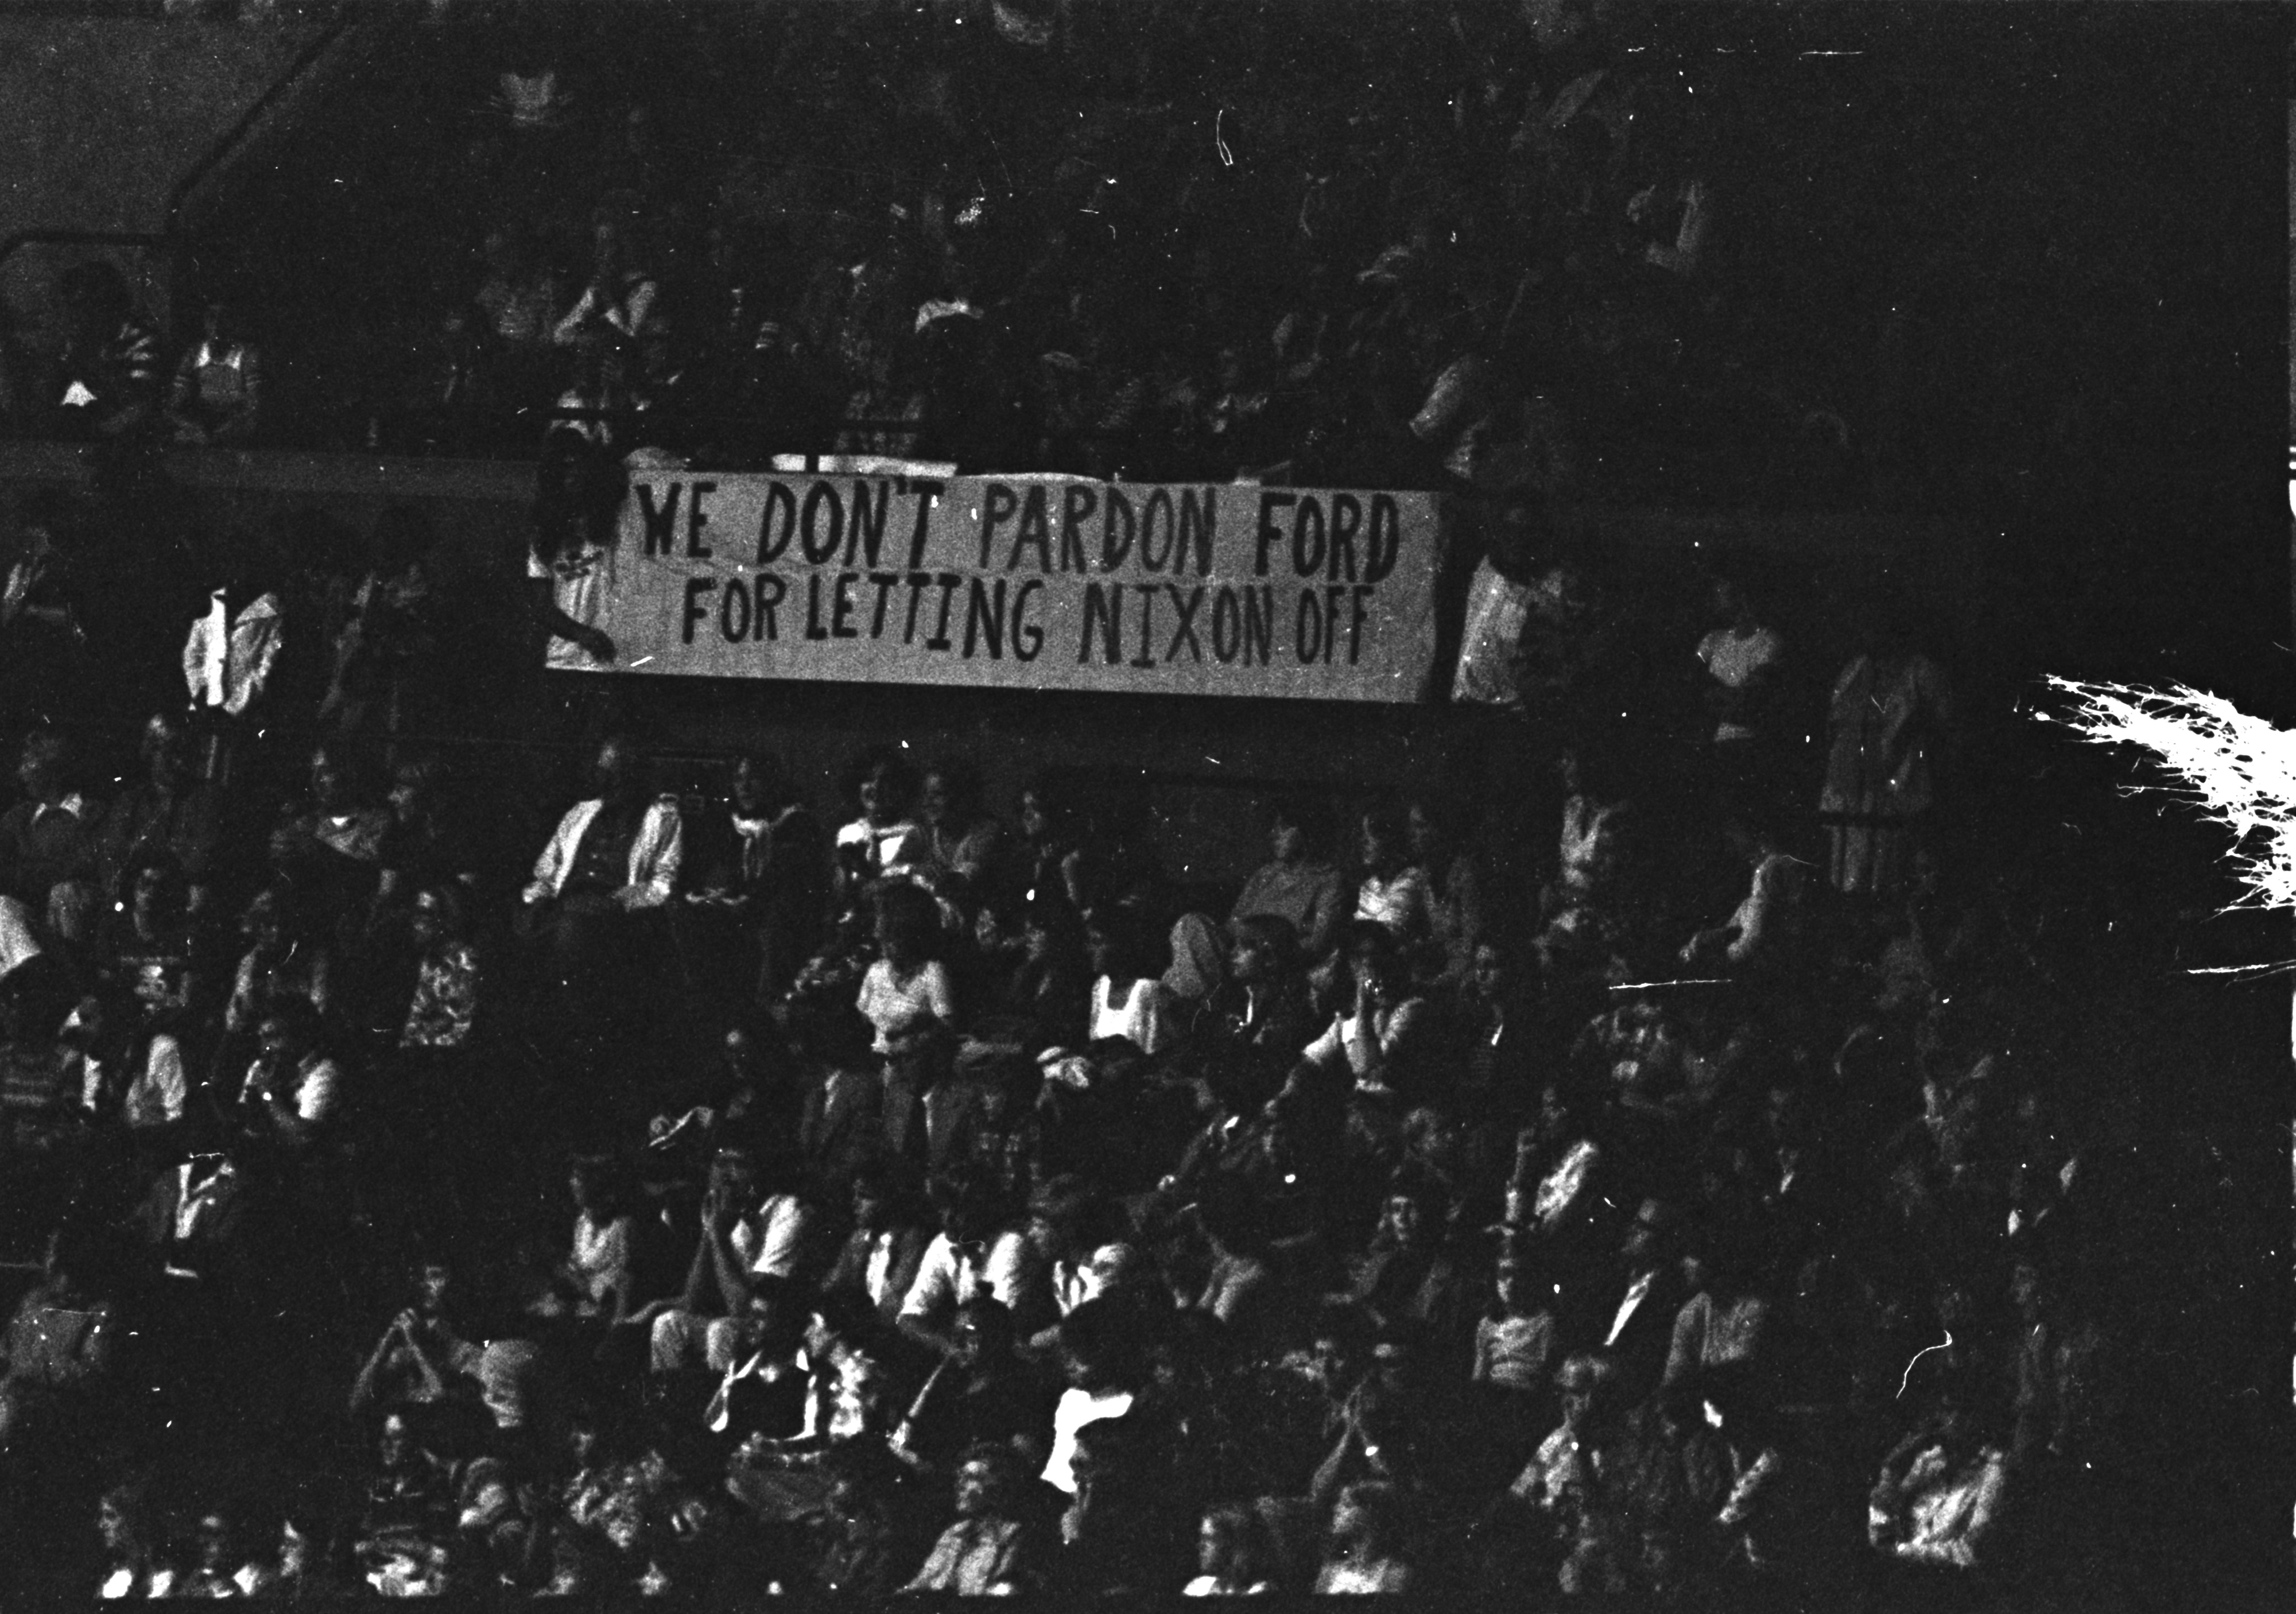 Protestors during President Gerald Ford's visit to U-M, September 1976 image